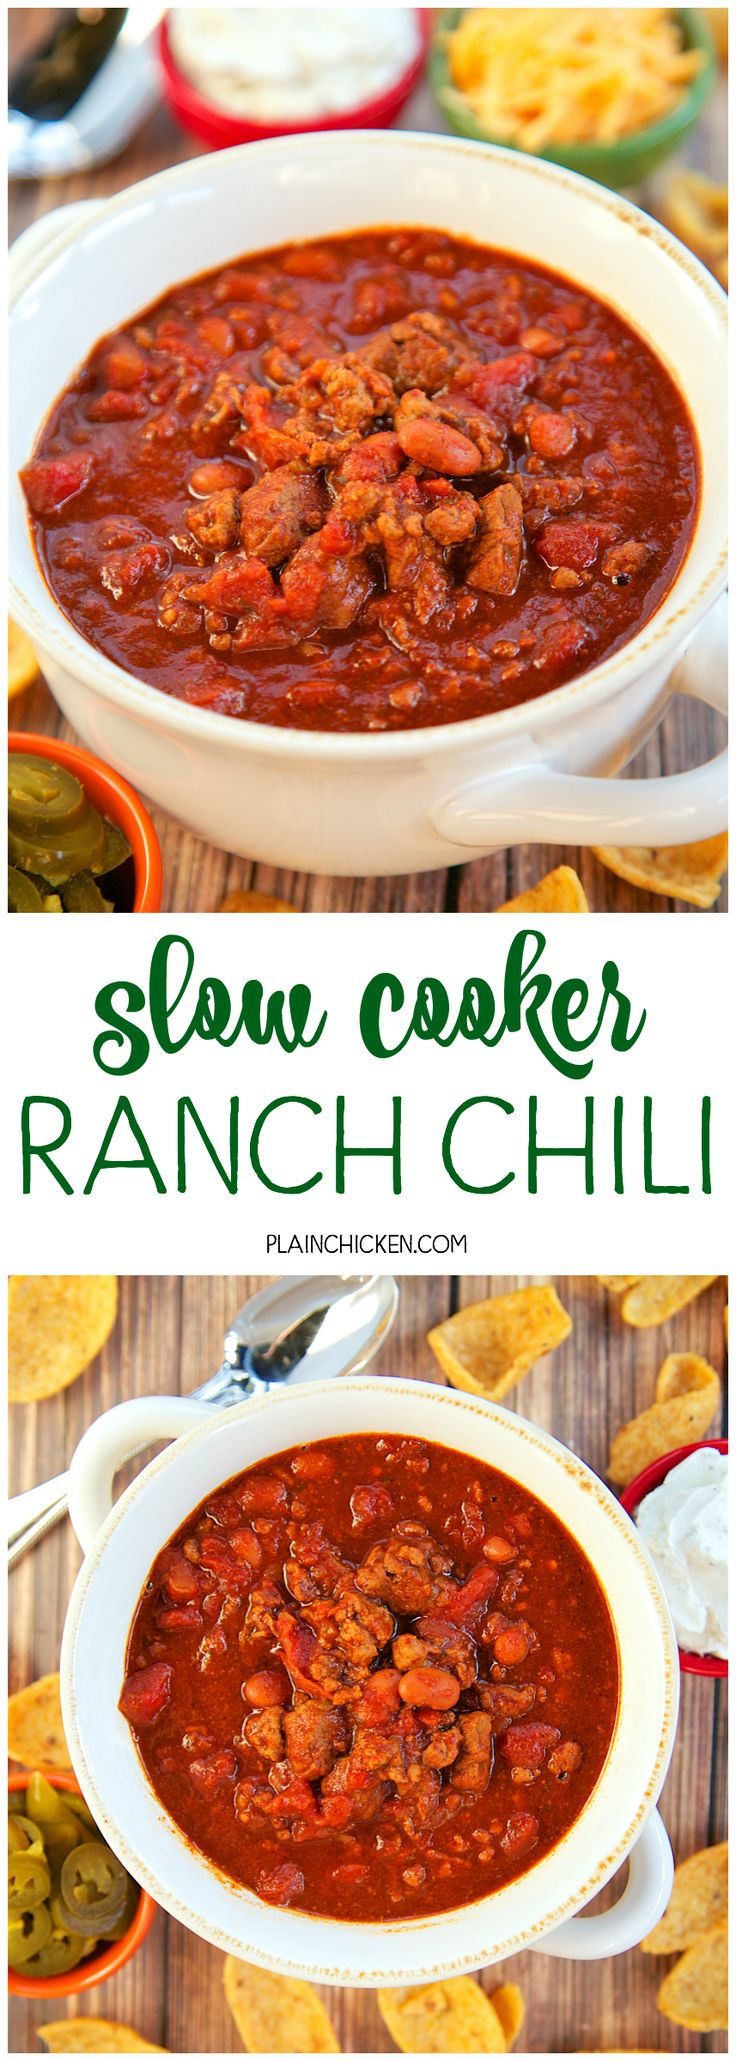 Slow Cooker Ranch Chili - THE ULTIMATE chili recipe!! Ground beef, stew meat, diced tomatoes, Rotel tomatoes, chili beans, beef broth, tomato paste, chili powder, cumin, garlic and Ranch dressing mix. This has all the best parts from all of my chili recipes. It is the seriously BEST chili recipe! Great for a crowd! Serve with some cornbread for a quick and easy meal!